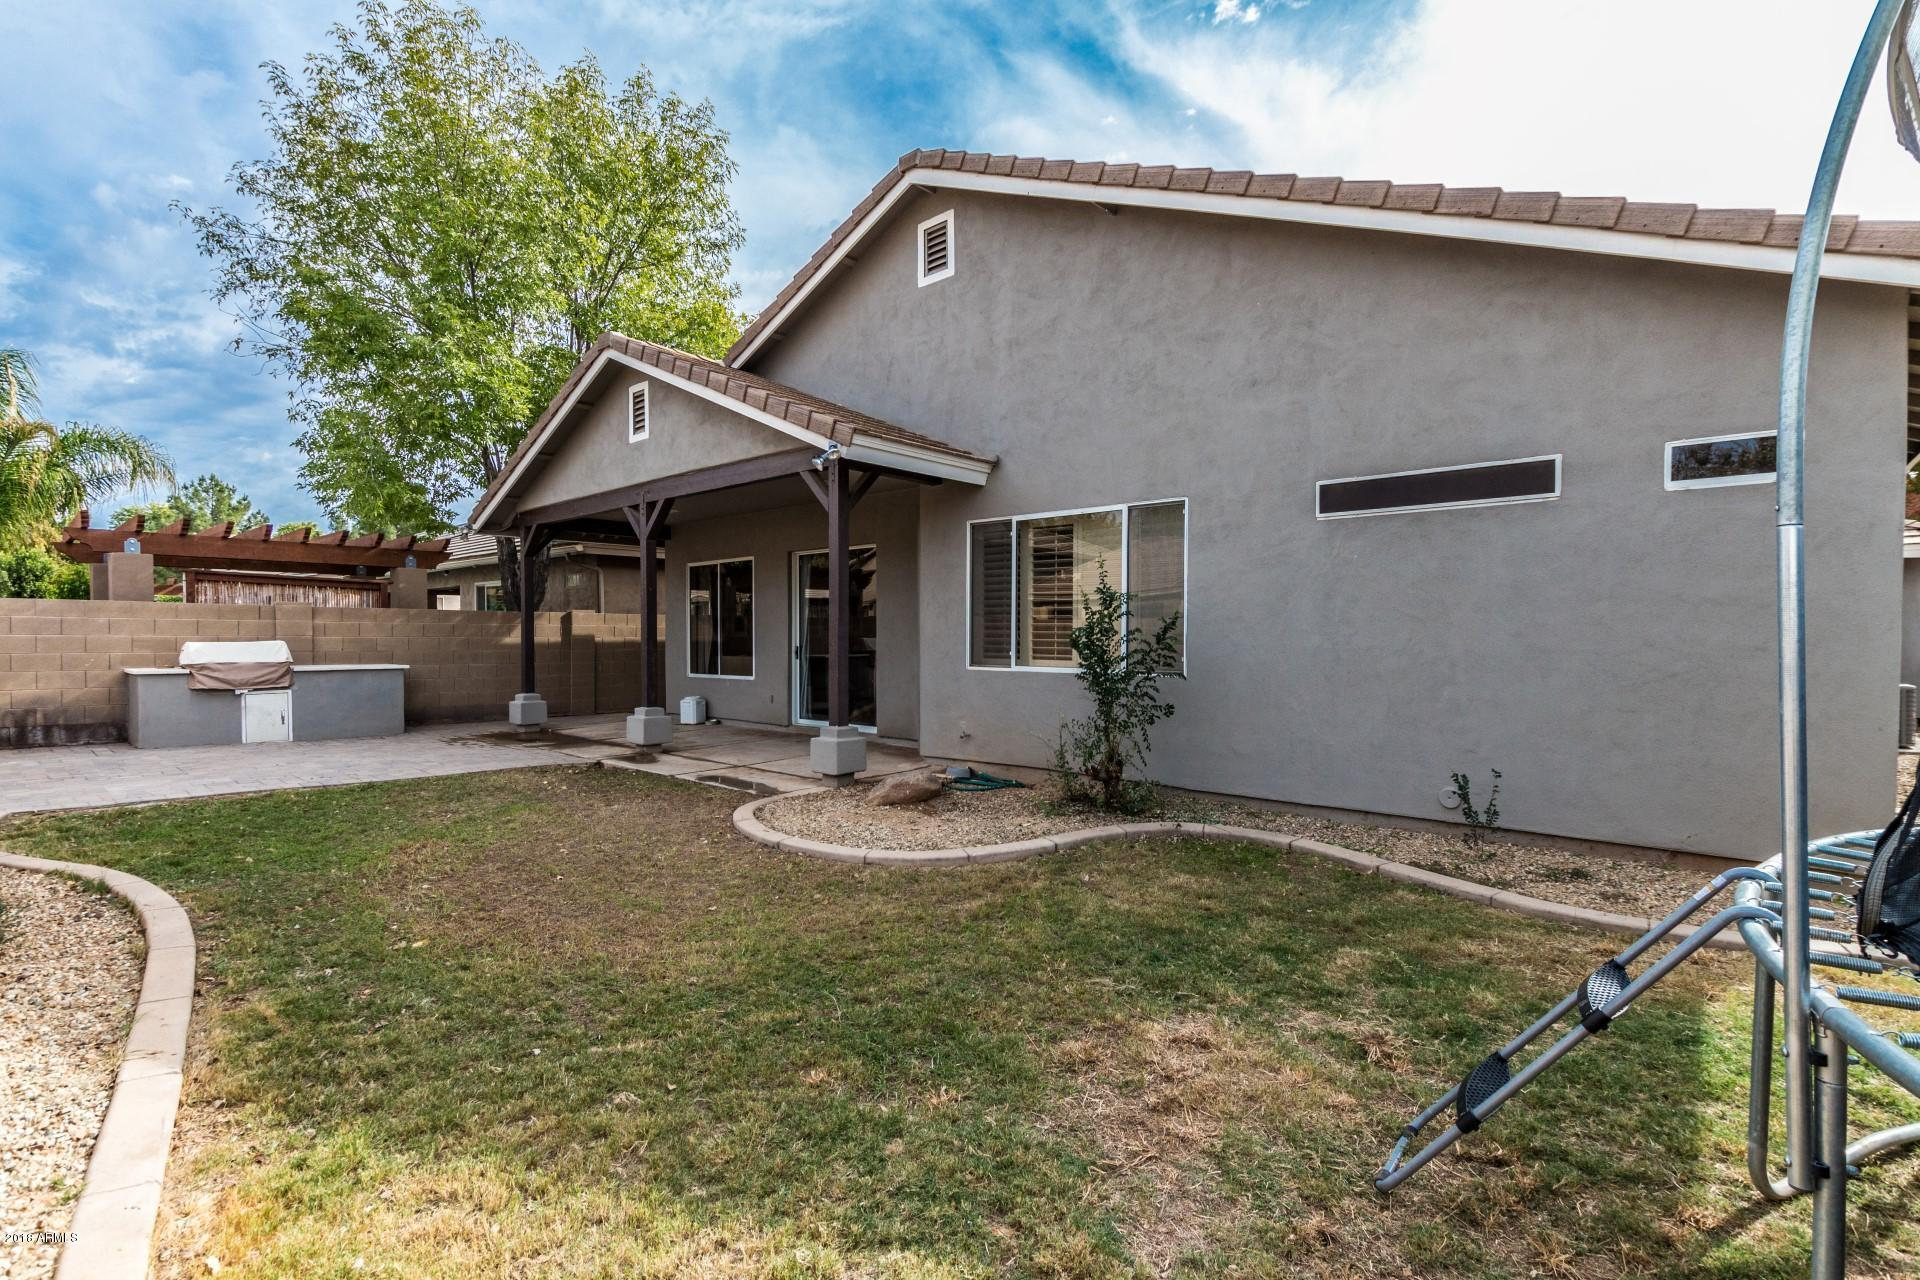 MLS 5851831 3554 E WASHINGTON Avenue, Gilbert, AZ 85234 Gilbert AZ Highland Groves